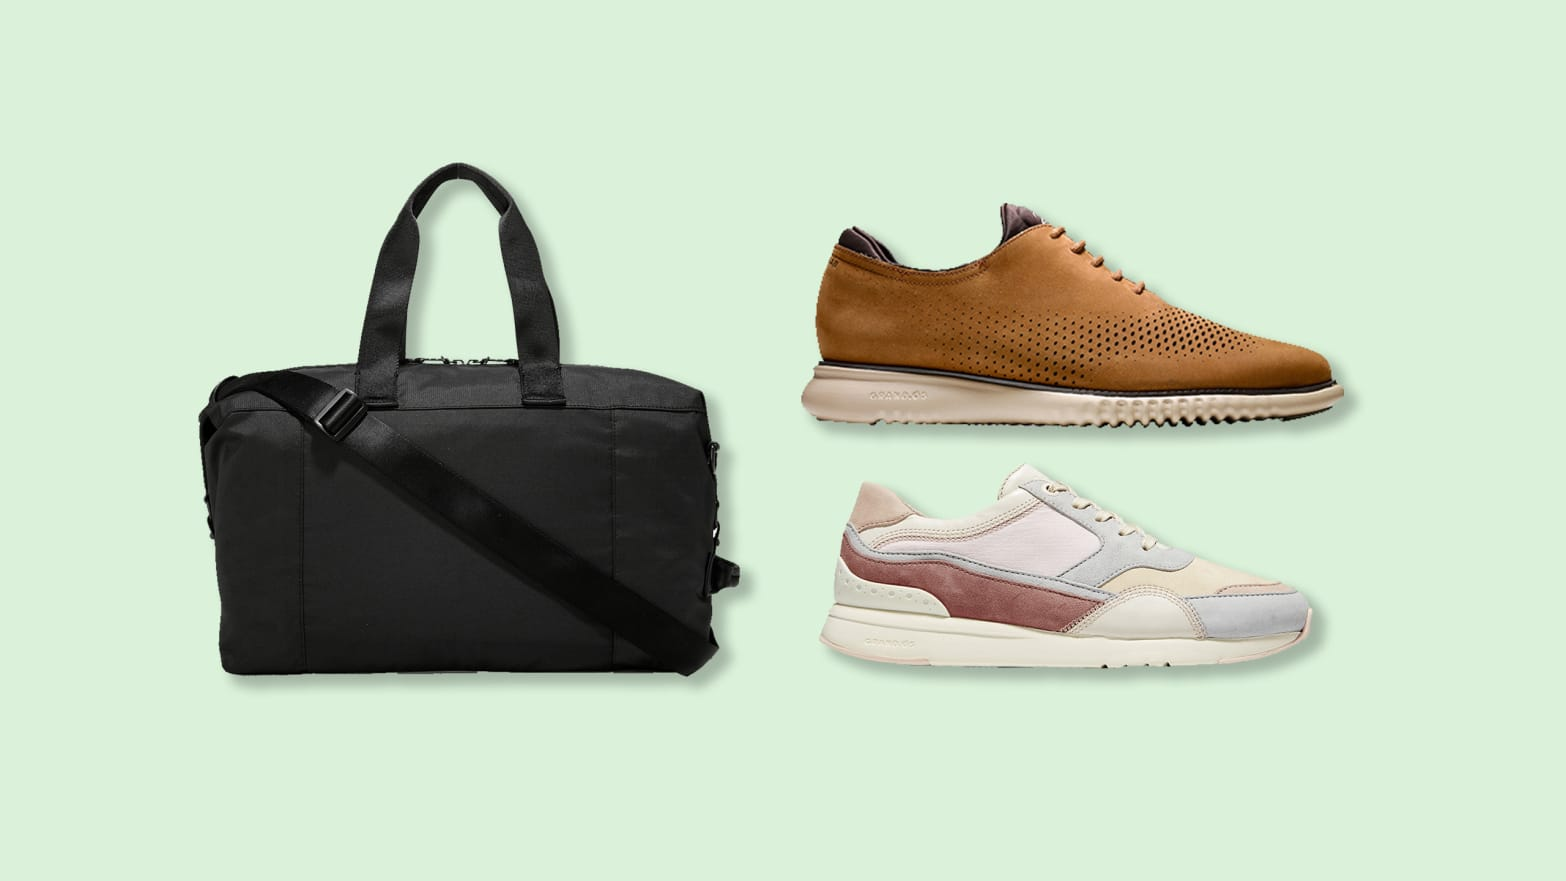 The Cole Haan End of Summer Sale Gets You More Than 50% Off